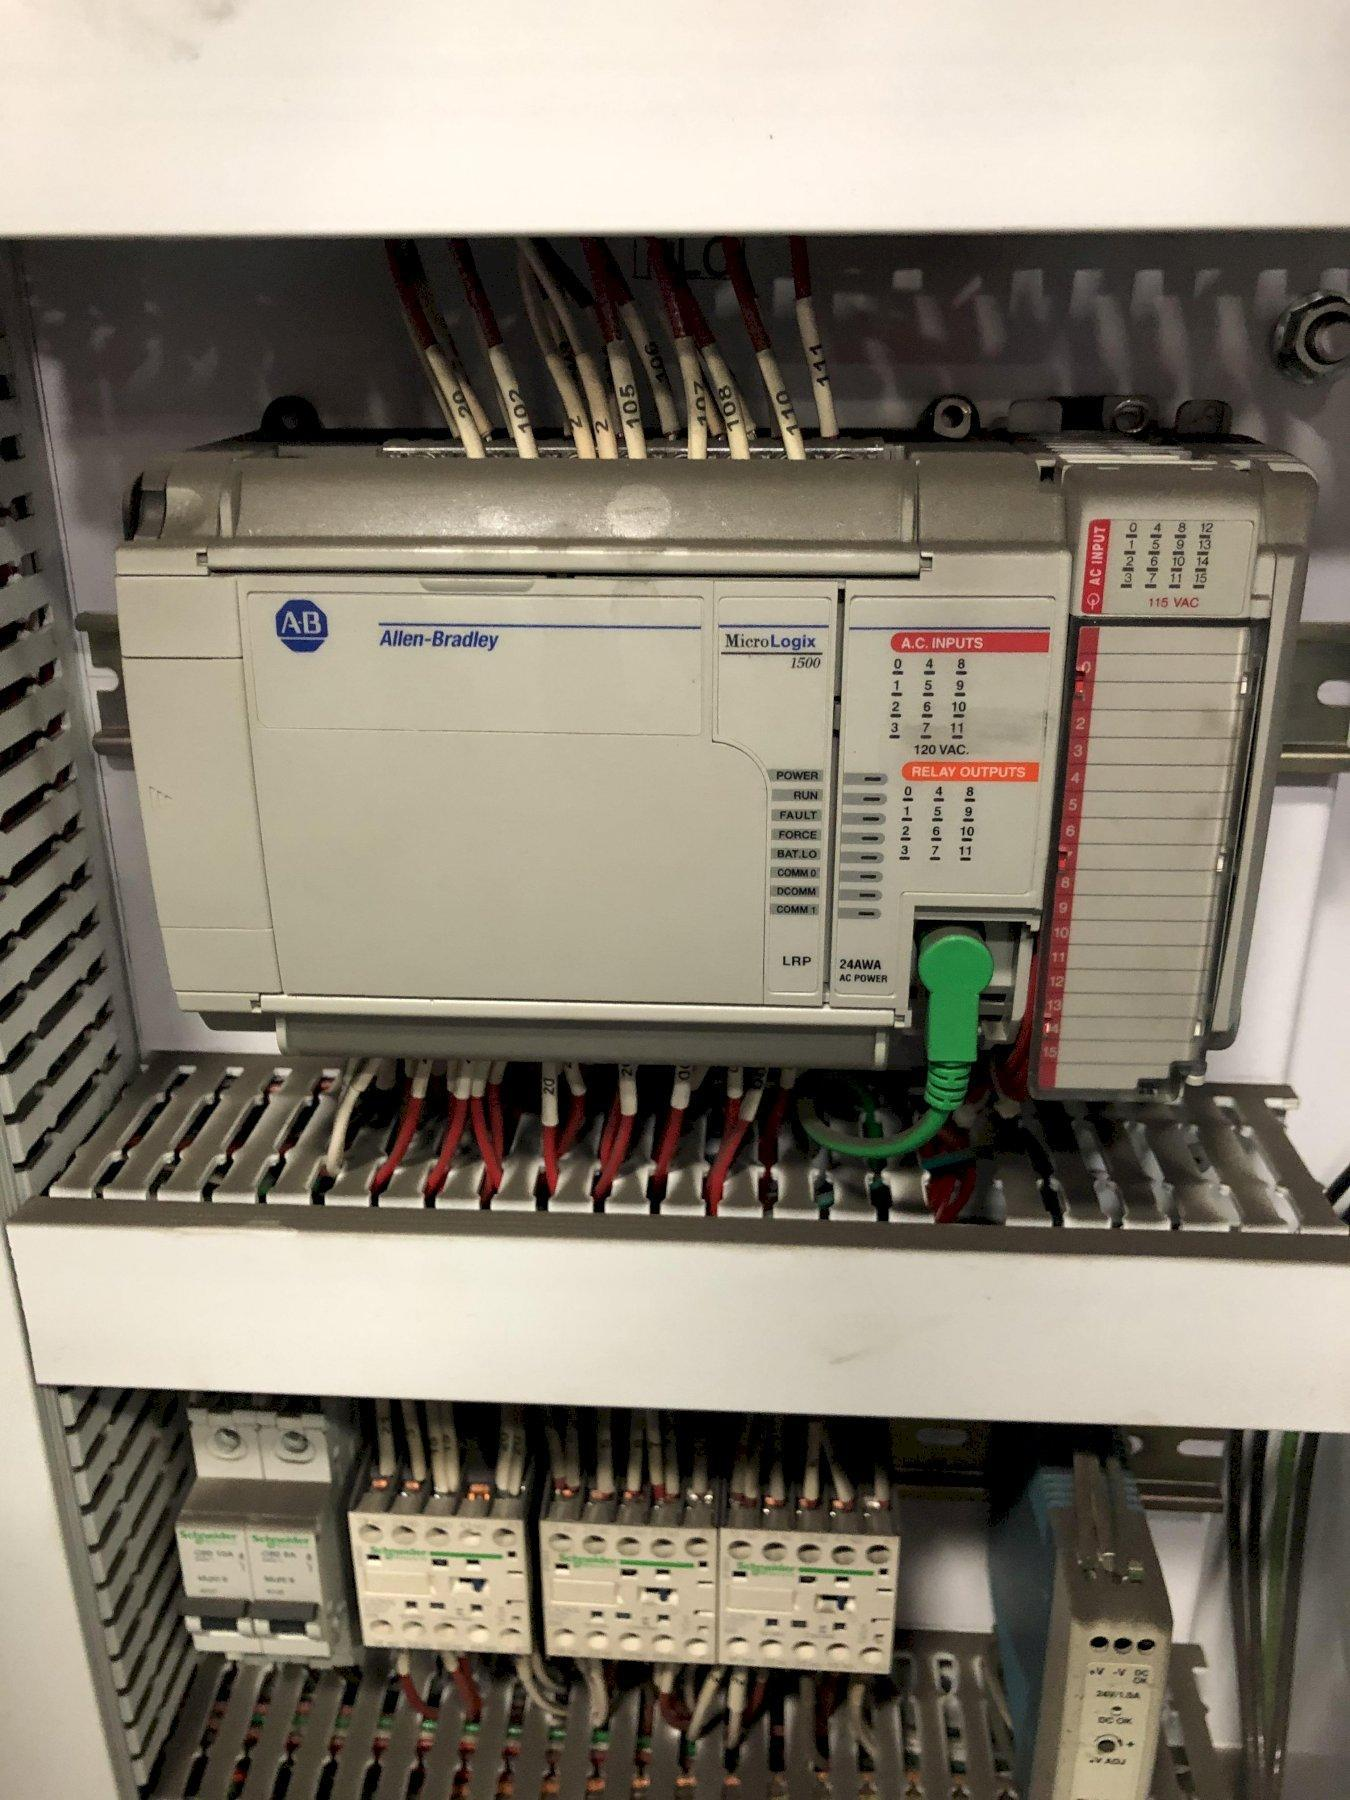 DEPENDABLE MODEL 400FA SHELL CORE MACHINE S/N 353-400FA WITH ALLEN BRADLEY MICROLOGIC 1500 PLC CONTROL AND GAS PANEL AND SAND FEED (EXCELLENT CONDITION)